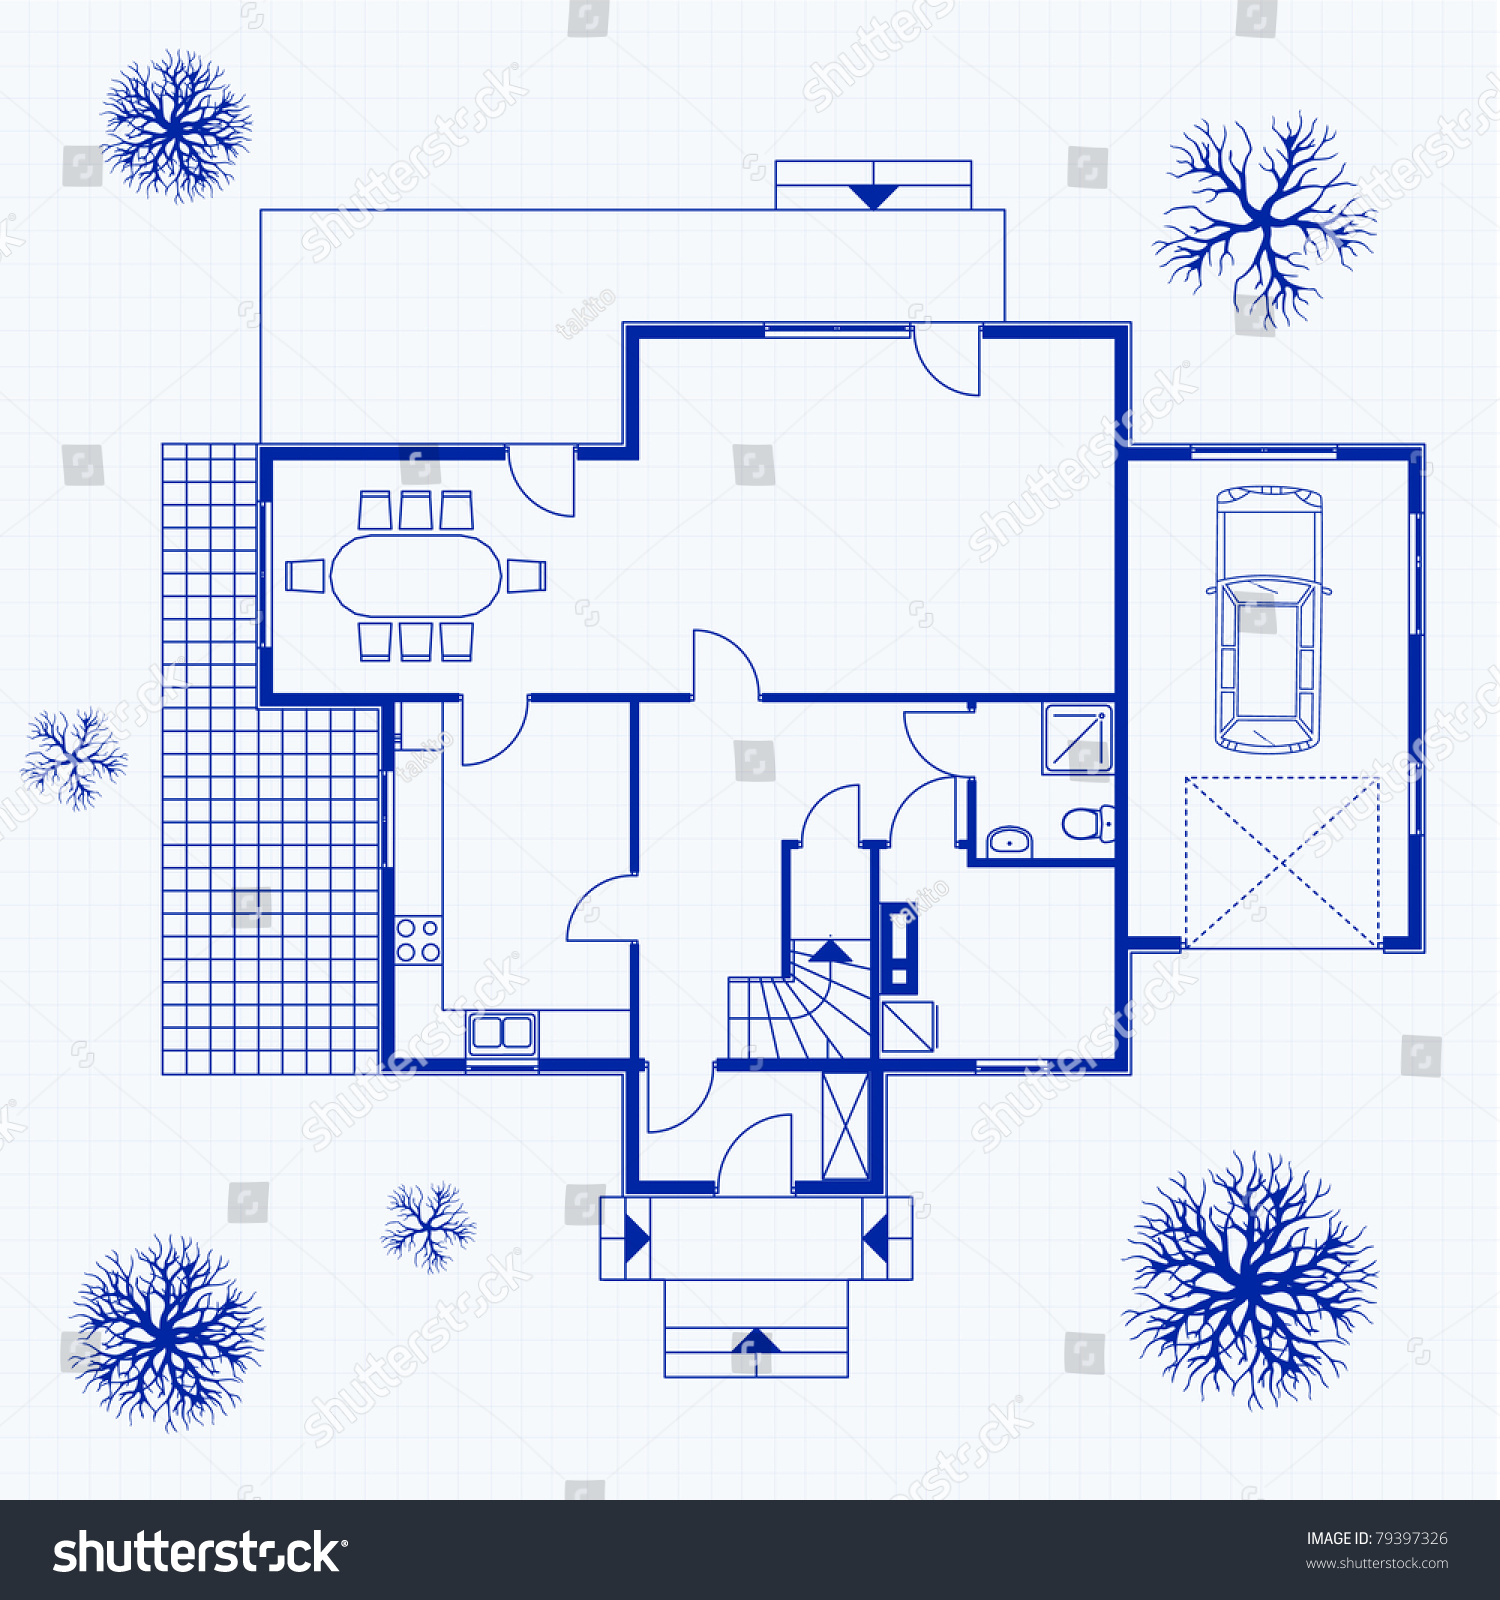 House blueprint exterior interior vector illustration for Blueprint homes